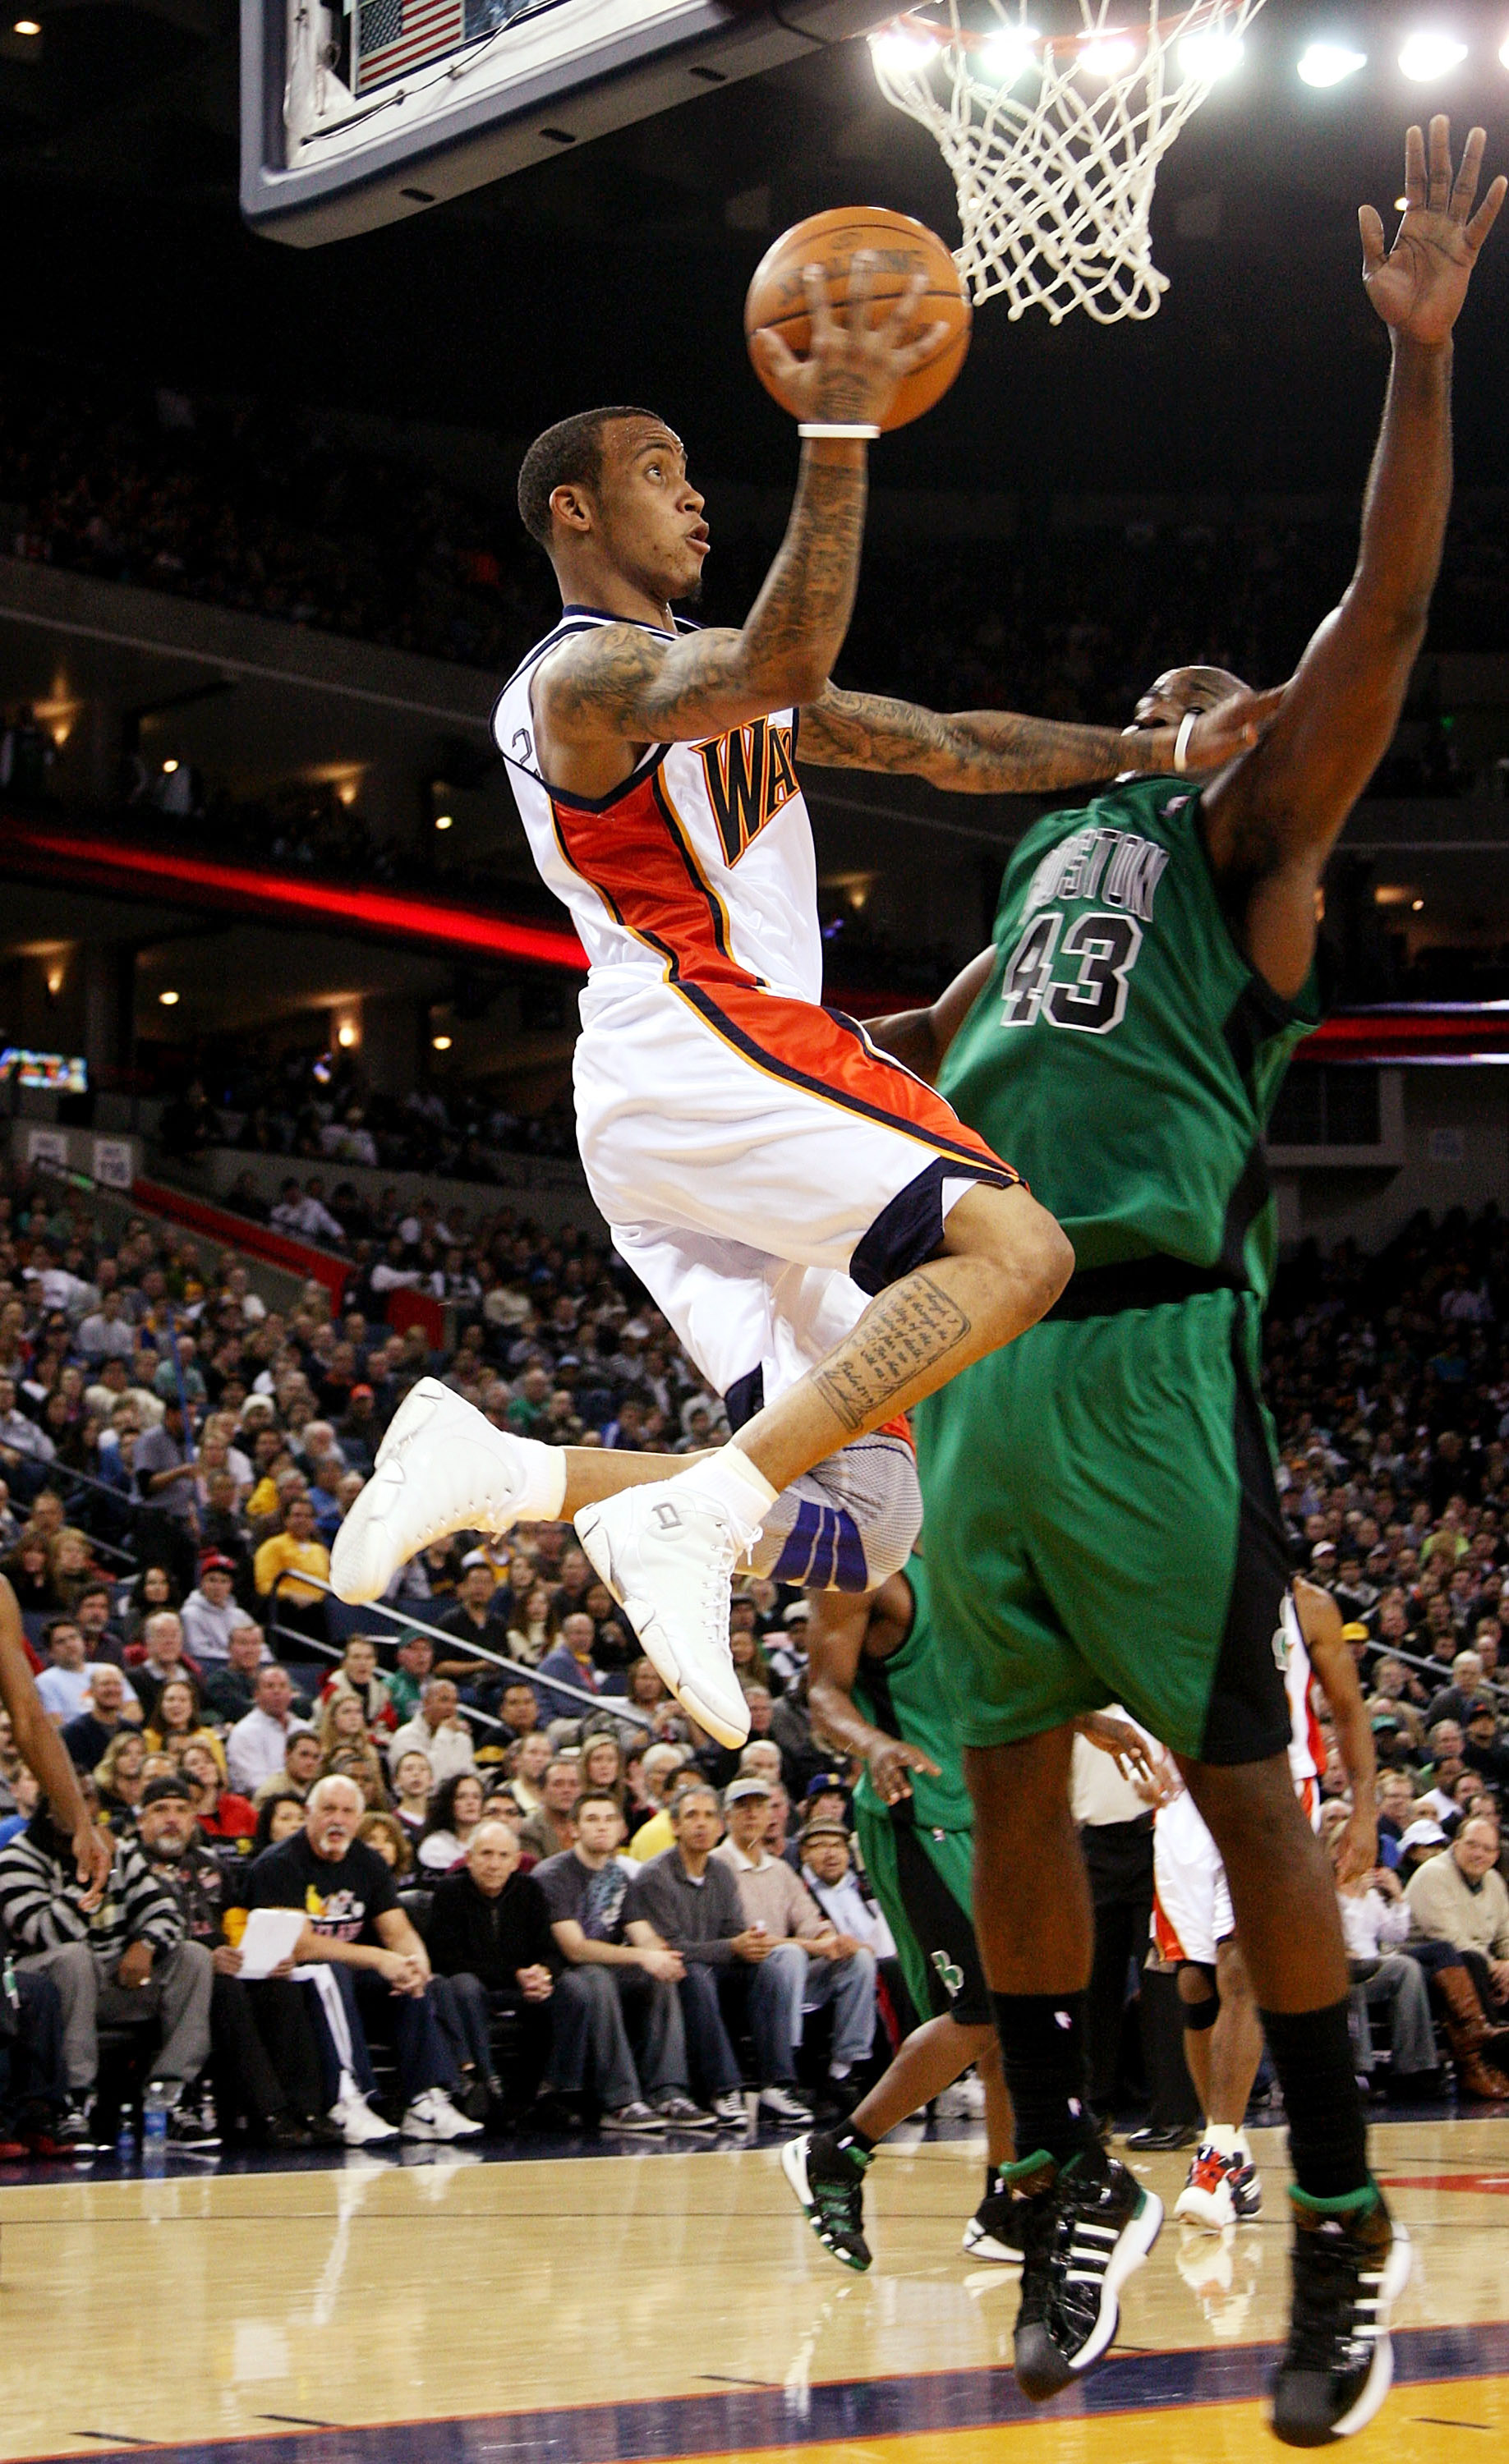 OAKLAND, CA - DECEMBER 28: Monta Ellis #8 of the Golden State Warriors shoots over Kendrick Perkins #43 of the Boston Celtics during an NBA game at Oracle Arena on December 28, 2009 in Oakland, California. NOTE TO USER: User expressly acknowledges and agr